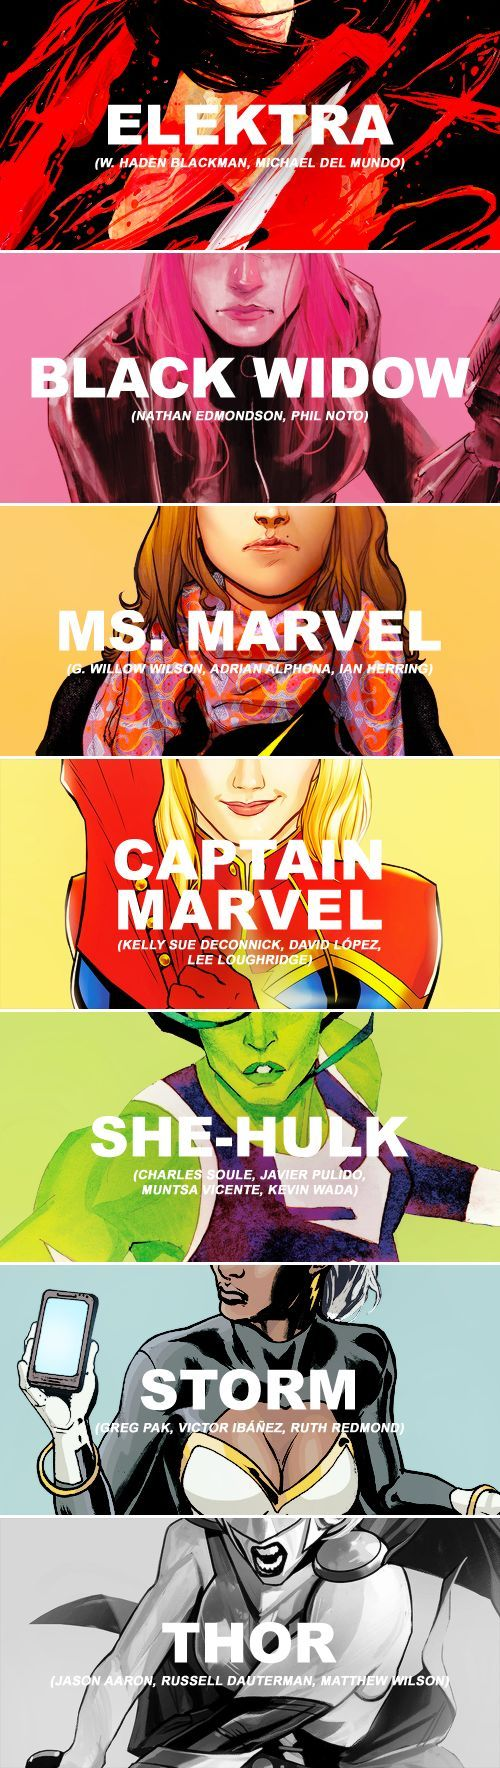 Marvel Now! (Ongoing) Solo Female Titles. Where's the Spider gals? - Visit to grab an amazing super hero shirt now on sale!